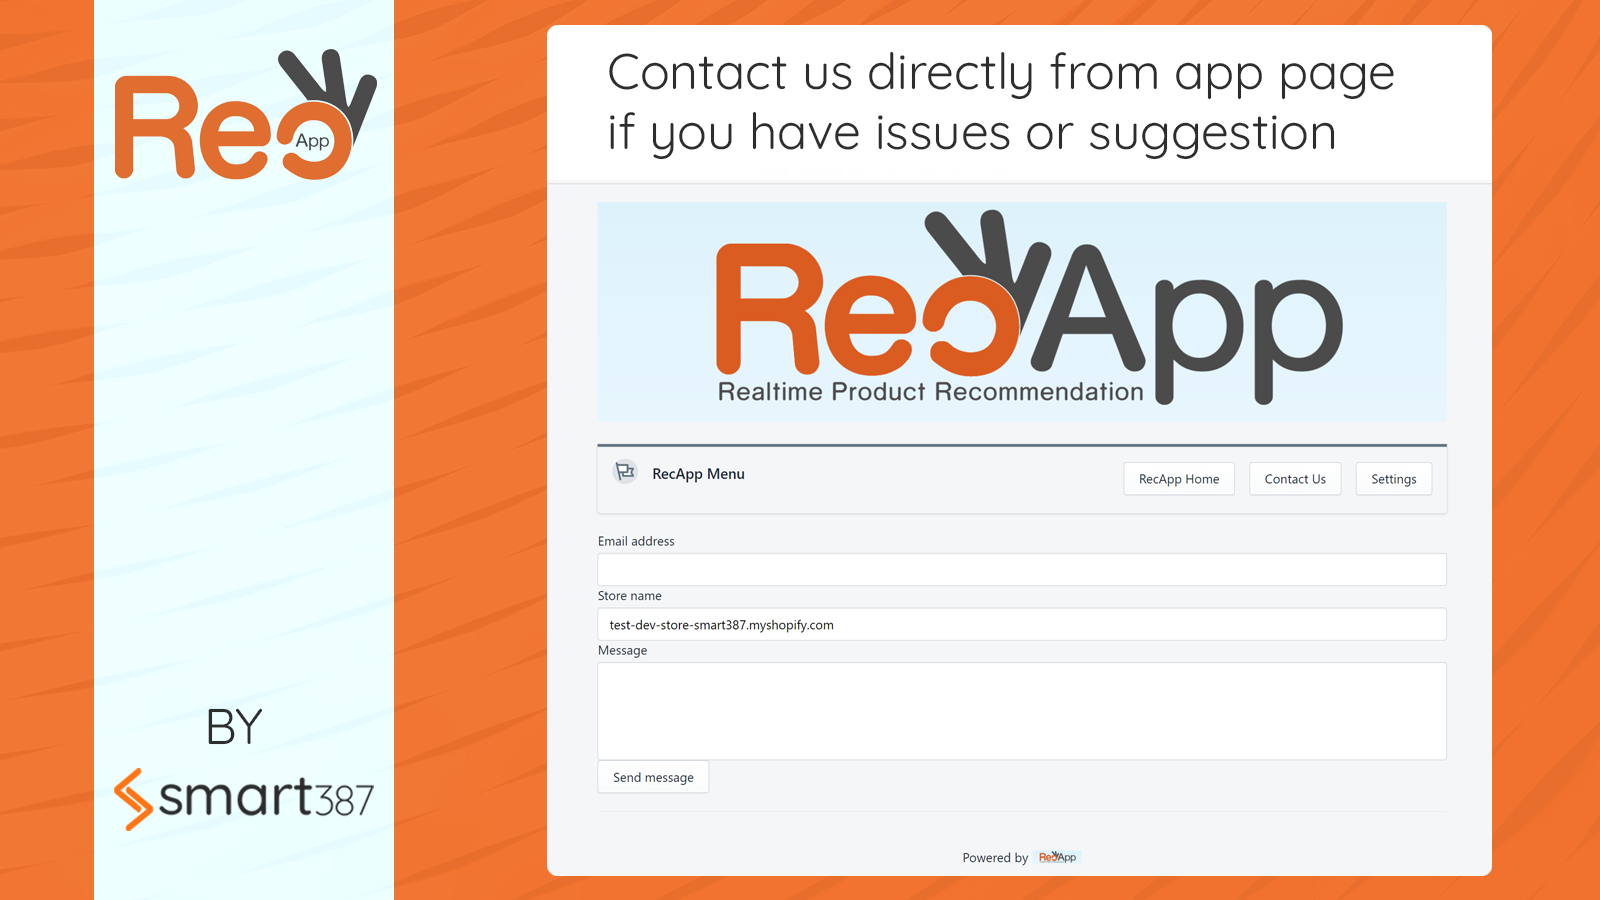 Contact us with feature request or issues directly from app